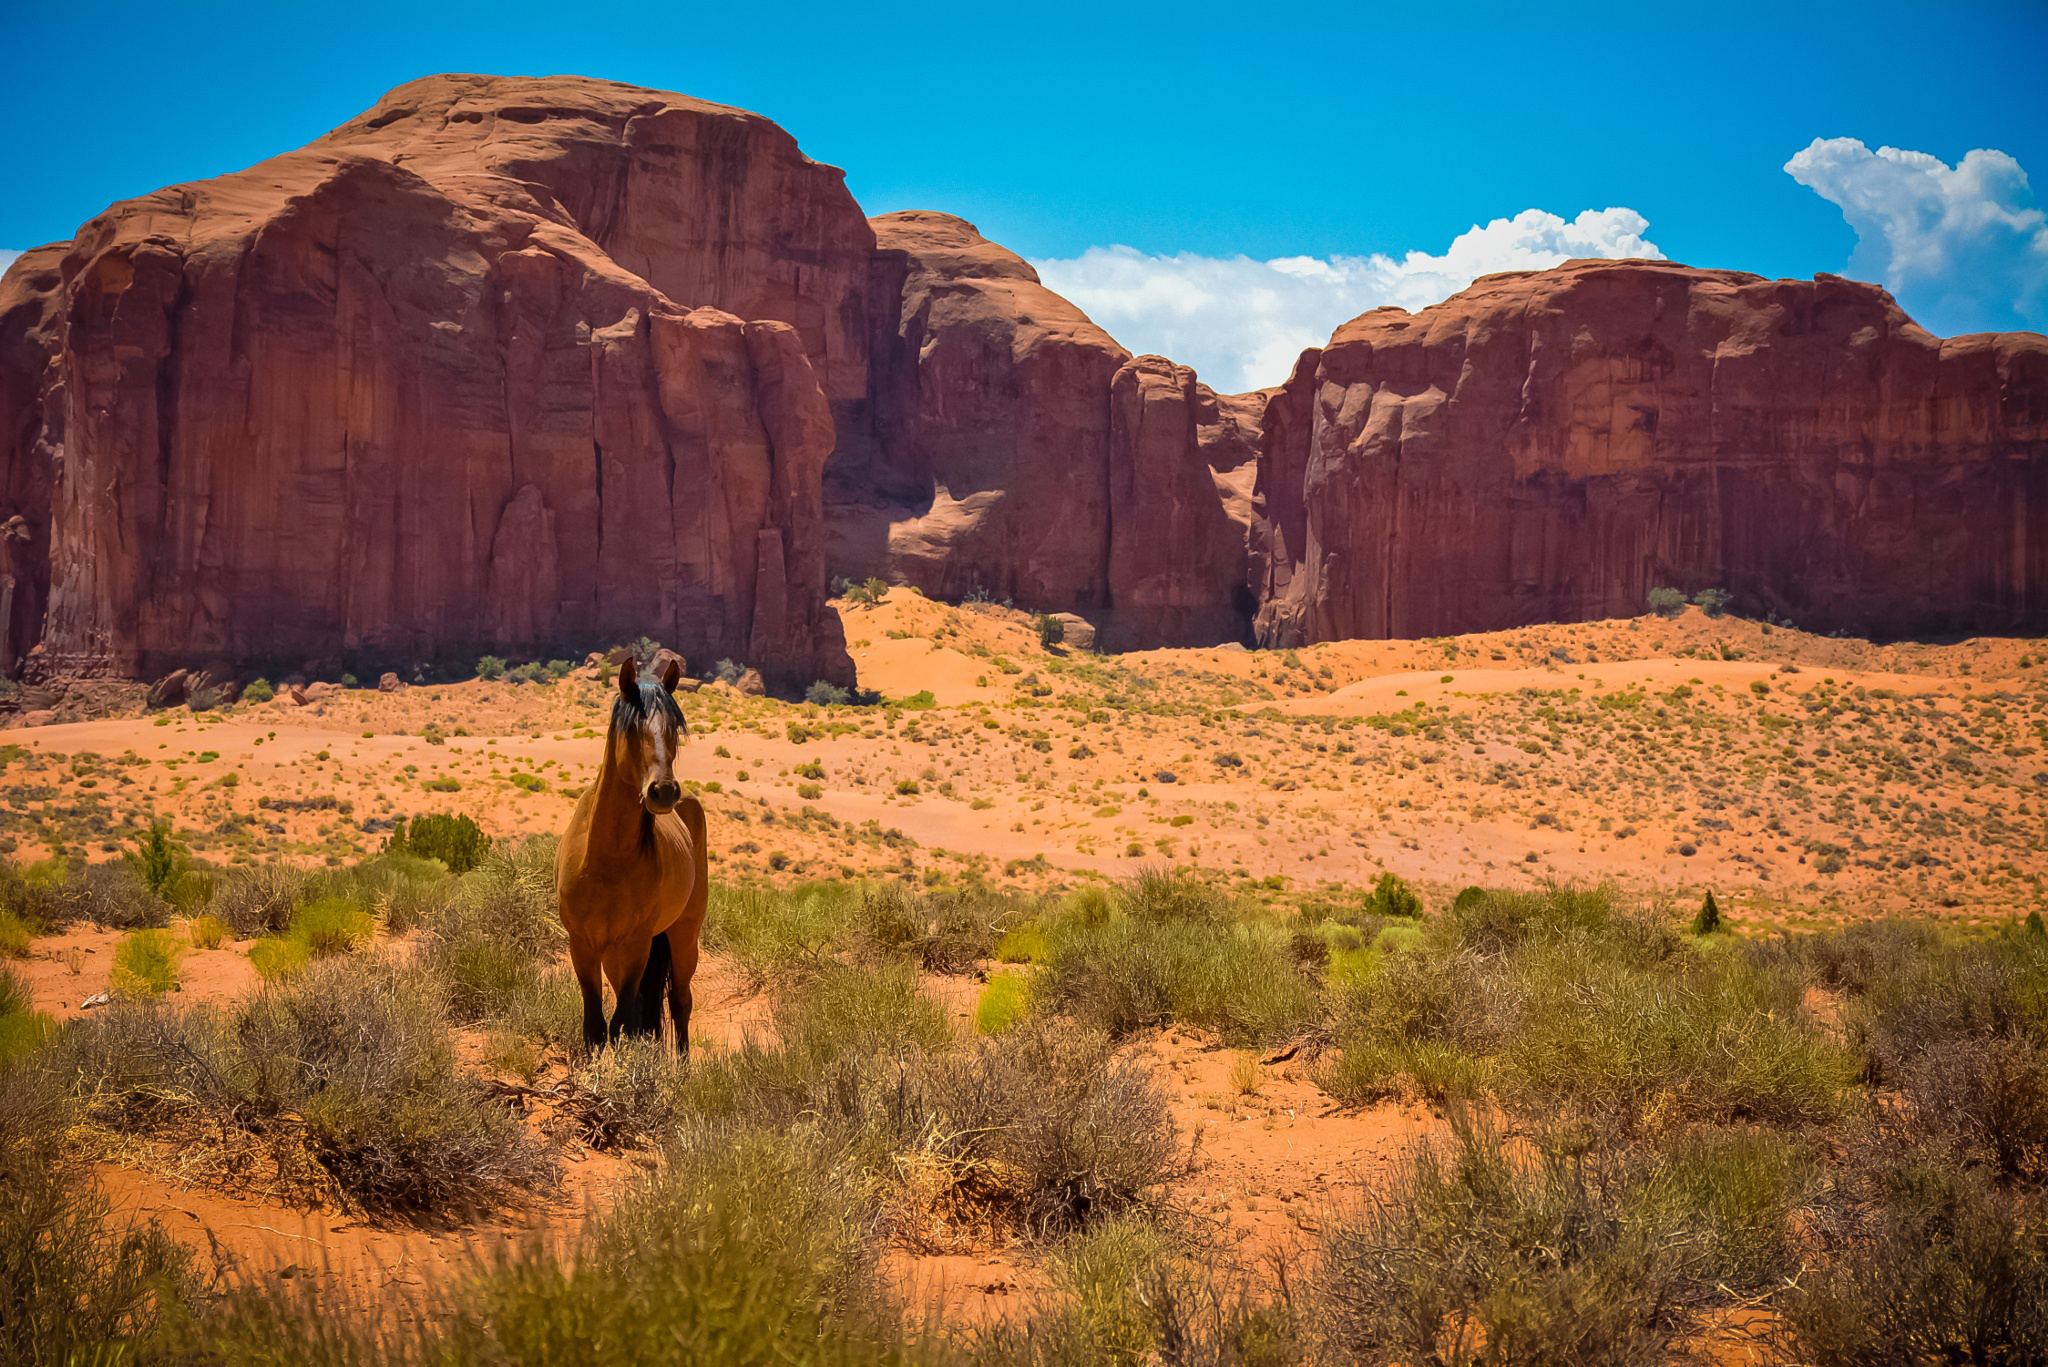 Free wallpaper 144957: Animals, Horse, Usa, United States, Arizona, Valley Of Monuments, Monument Valley, Wild West, Desert download pictures for cellphone